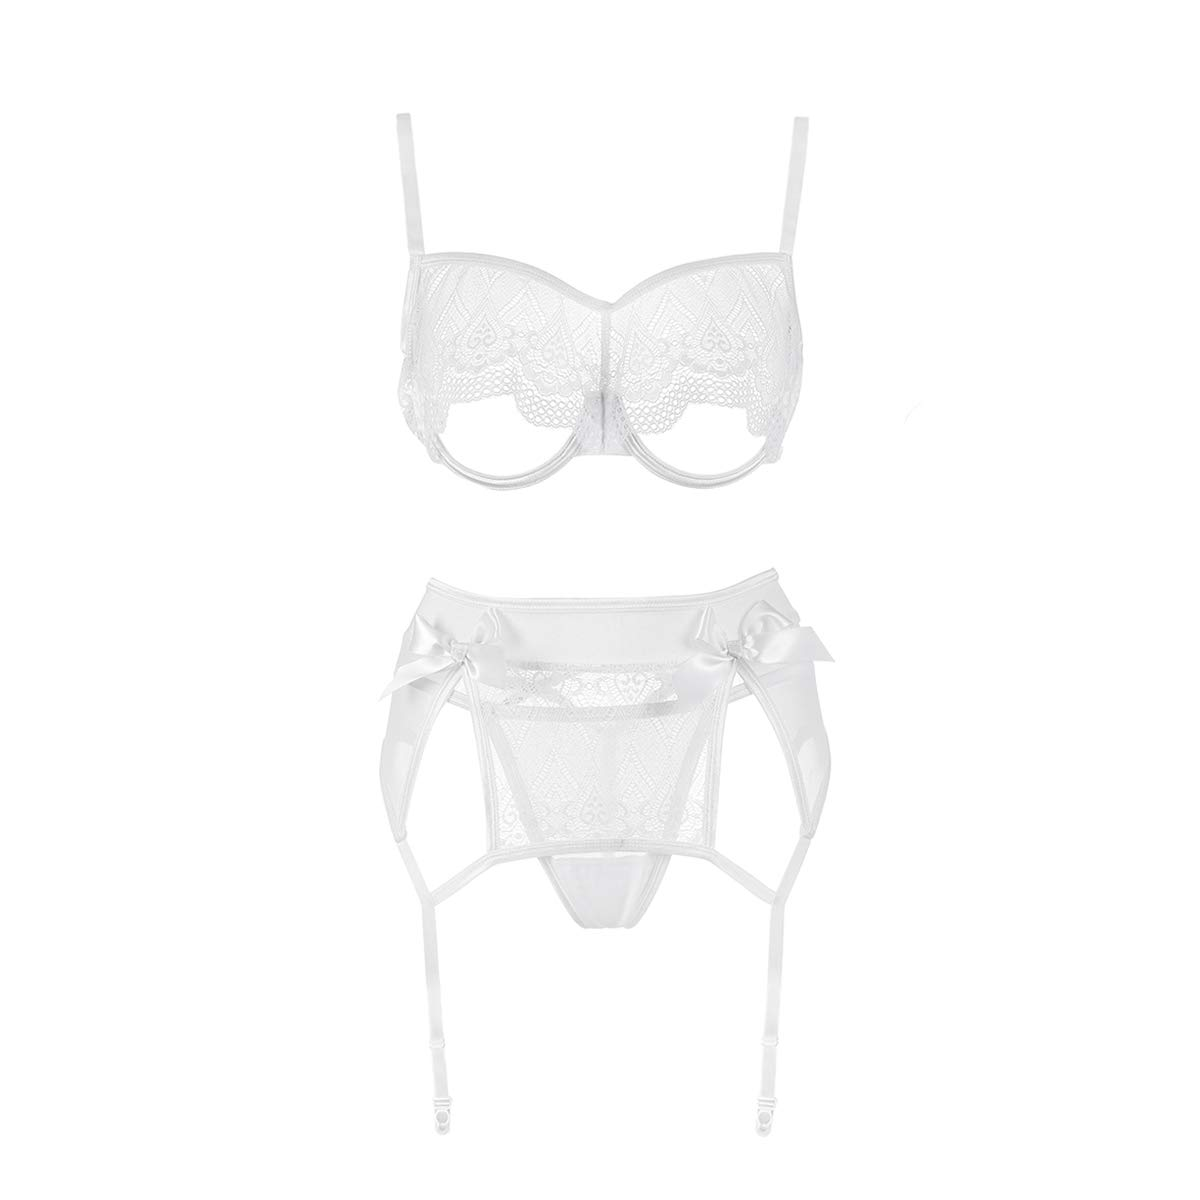 xspice Sexy Lingerie Set for Women, 3 Piece Lingerie for Women with Garter Belts and Thong, Excluding Stockings (M/L, White)